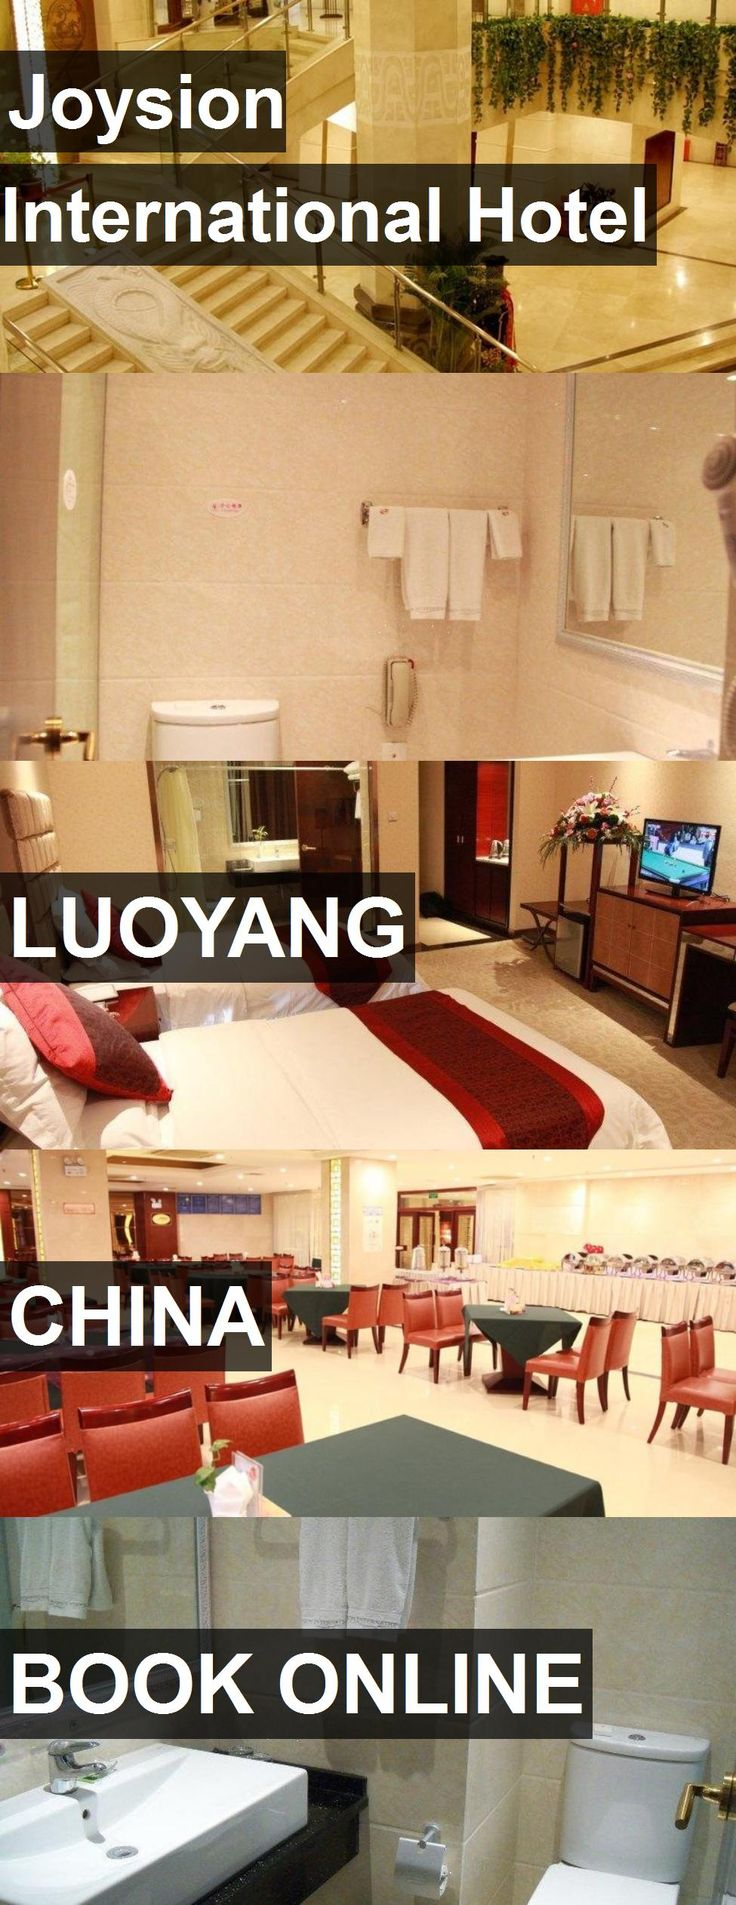 Joysion International Hotel in Luoyang, China. For more information, photos, reviews and best prices please follow the link. #China #Luoyang #travel #vacation #hotel